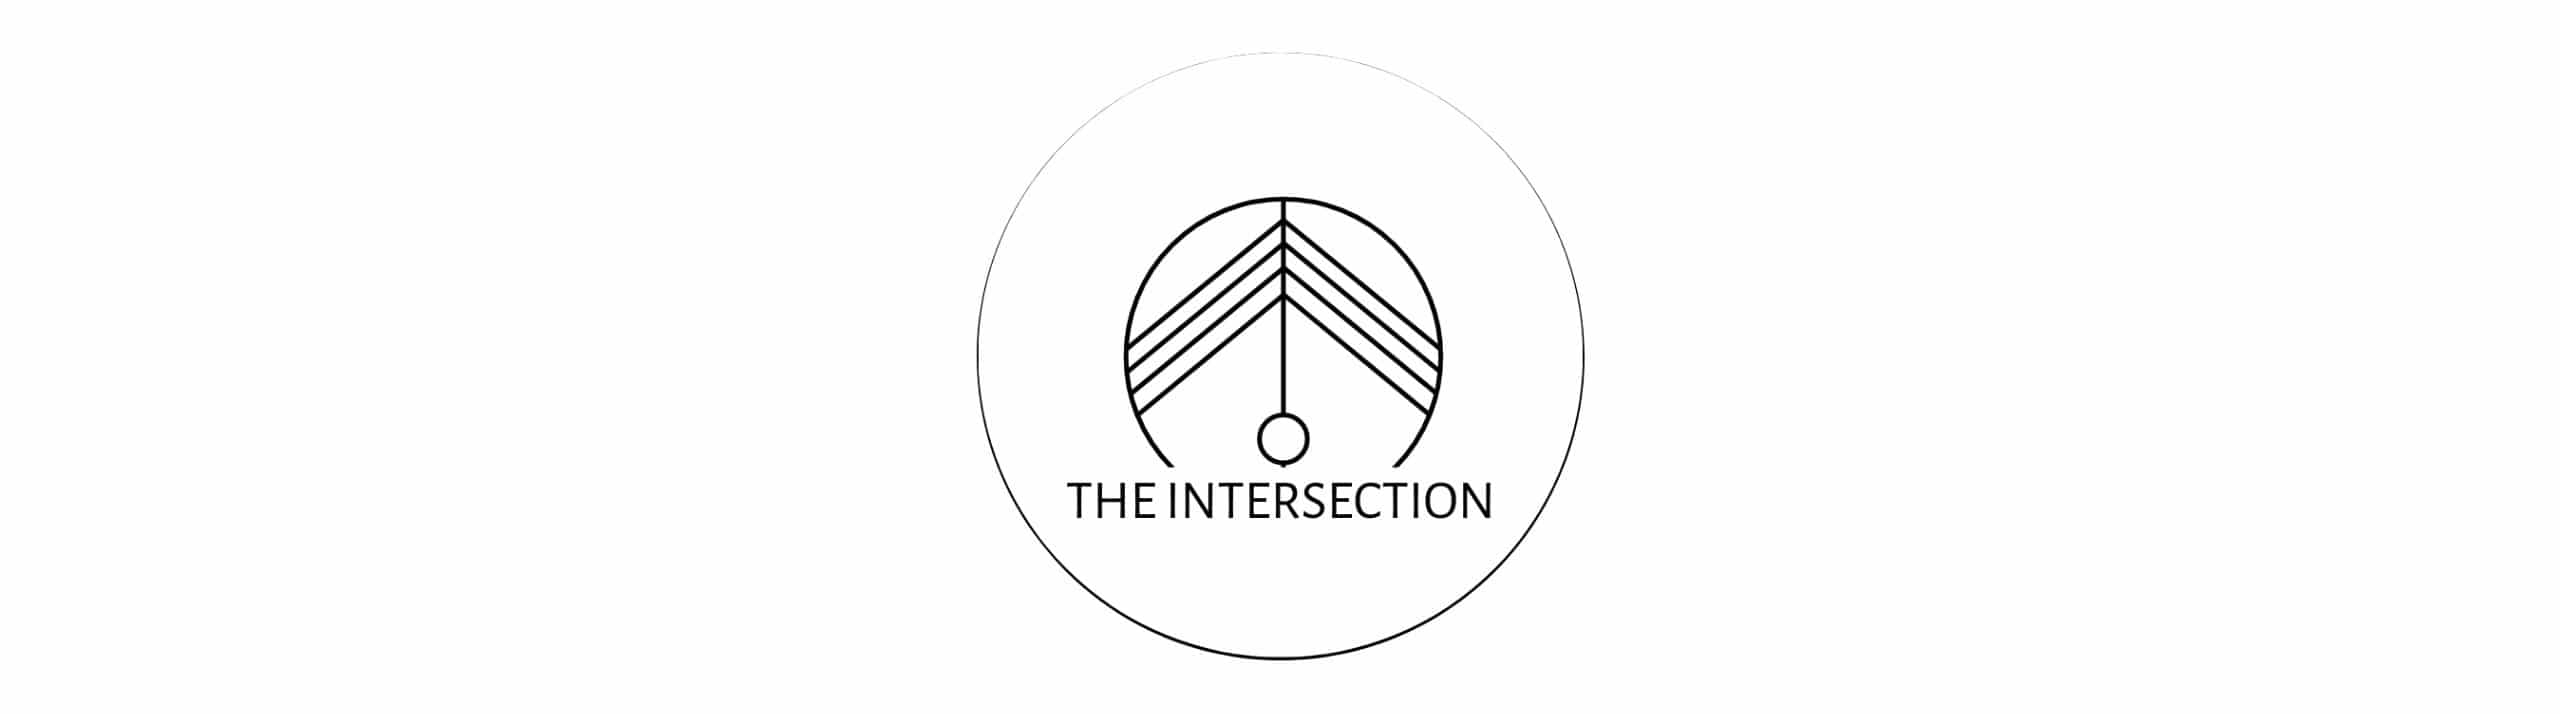 Featured Image for The Intersection hosted by Xolisa Jerome at CJRU